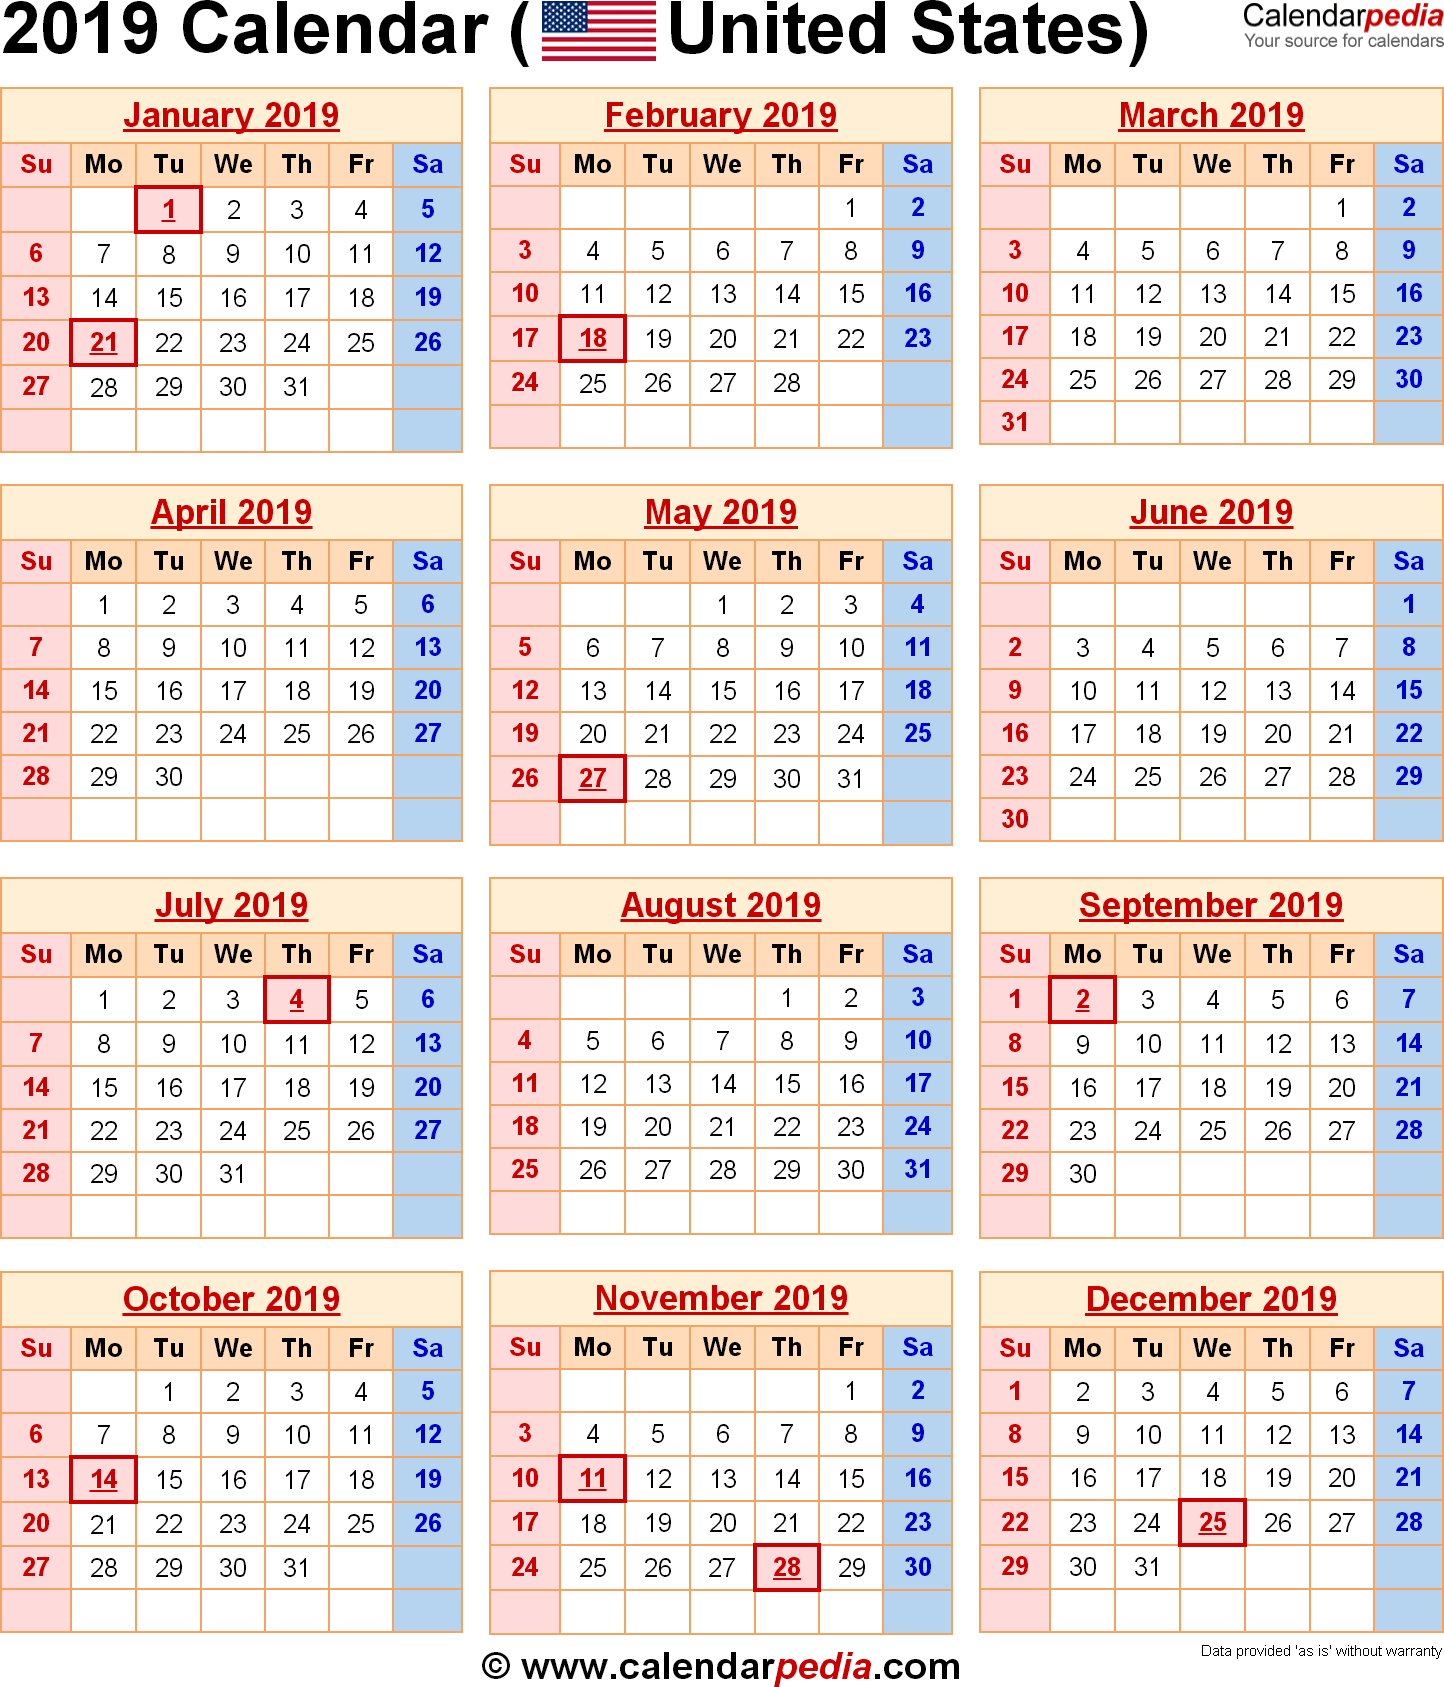 2019 Leave Year Calendar With Federal Holidays Excel PDF Word Templates